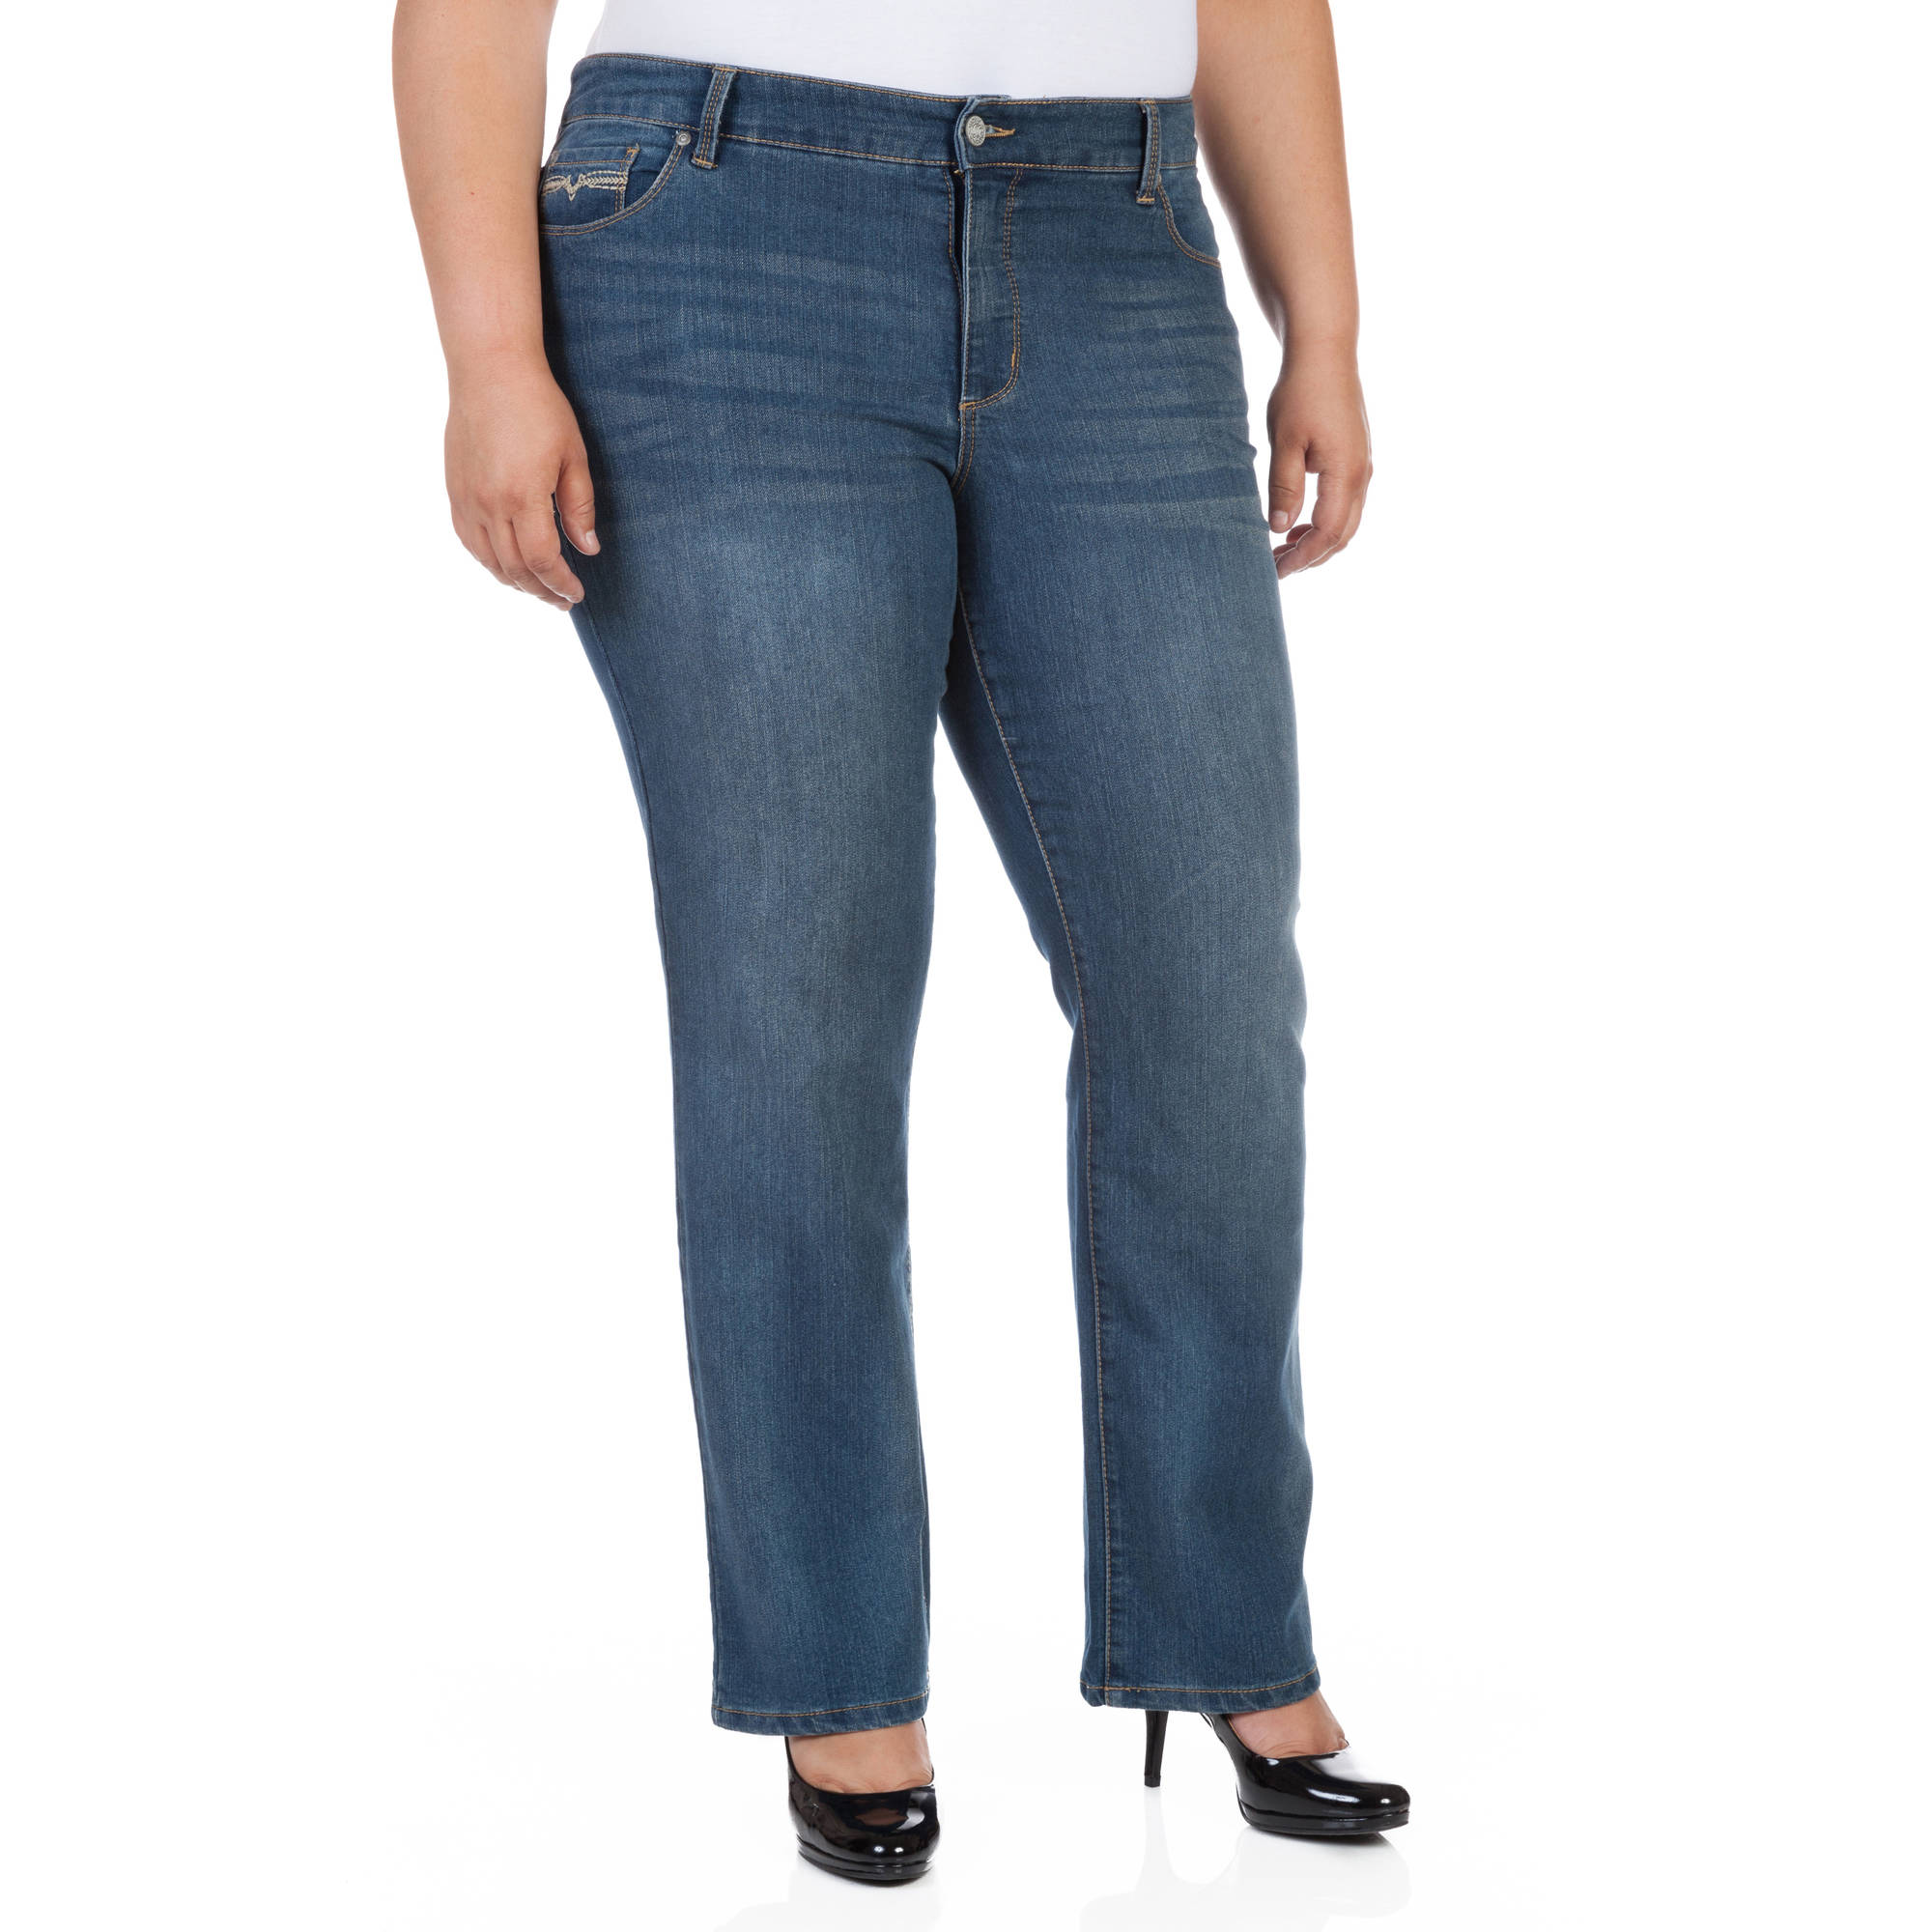 Destroyed Skinny Jeans Plus Size